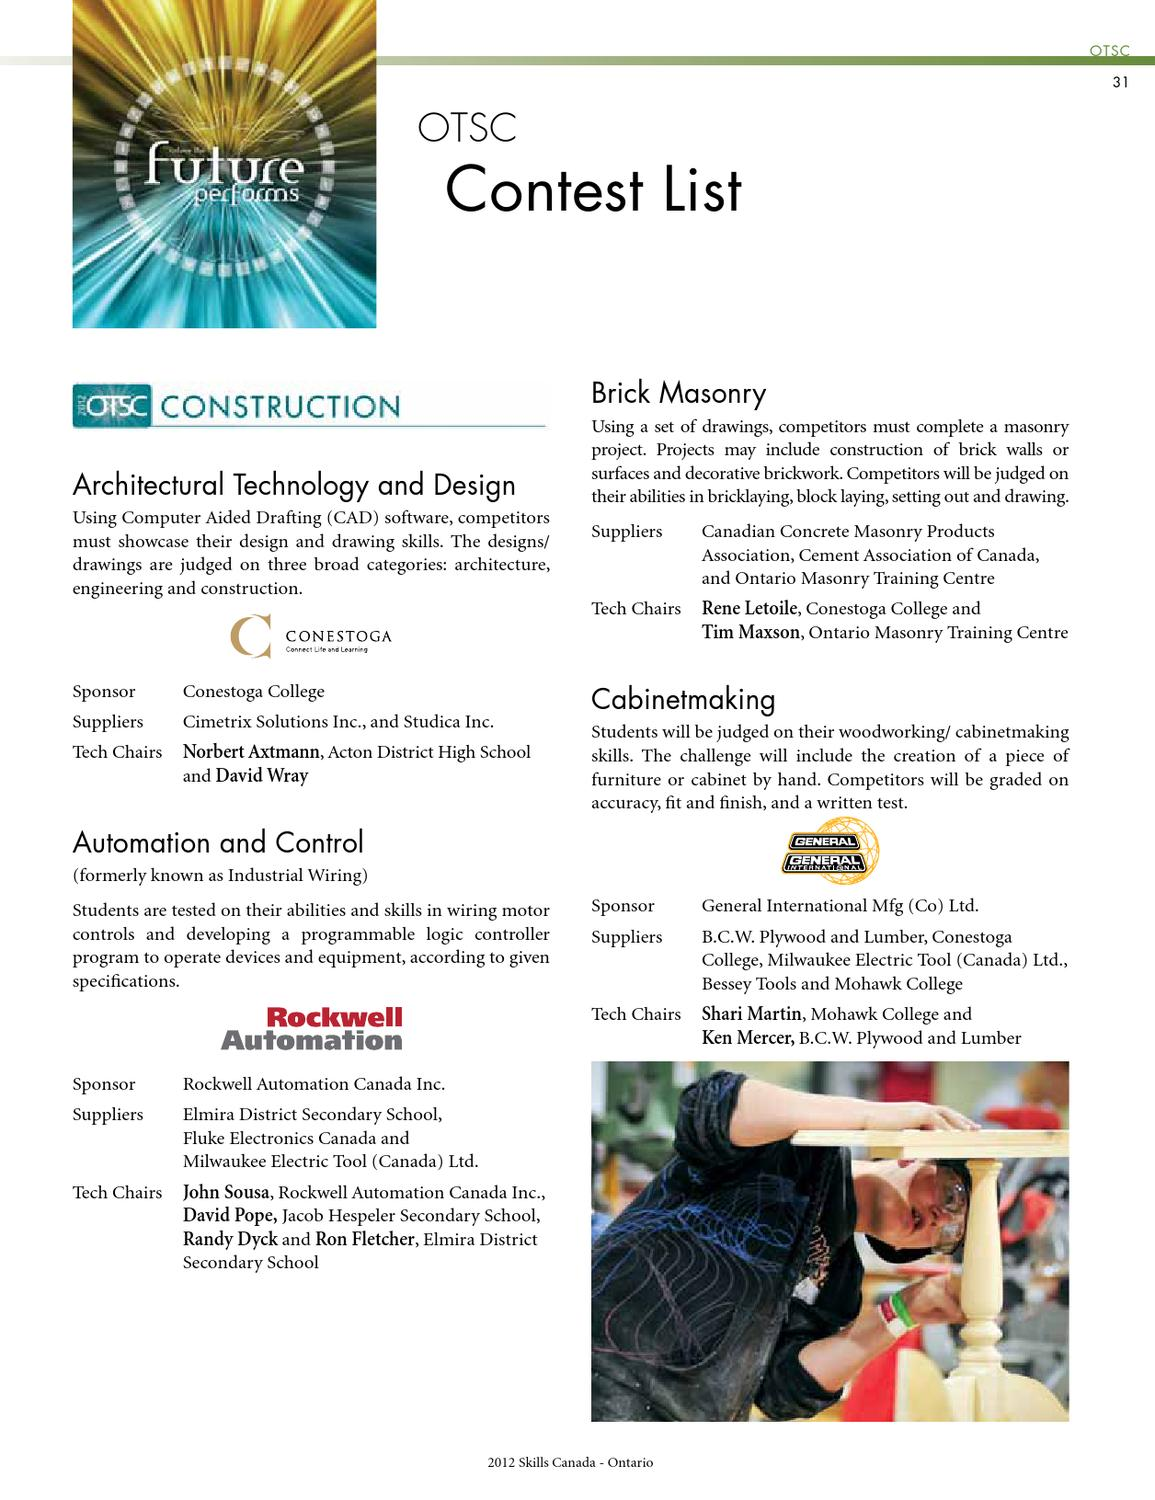 Otsc Showguide Skills Ontario By Icontact Design Issuu Complete Wiring Solutions Ltd